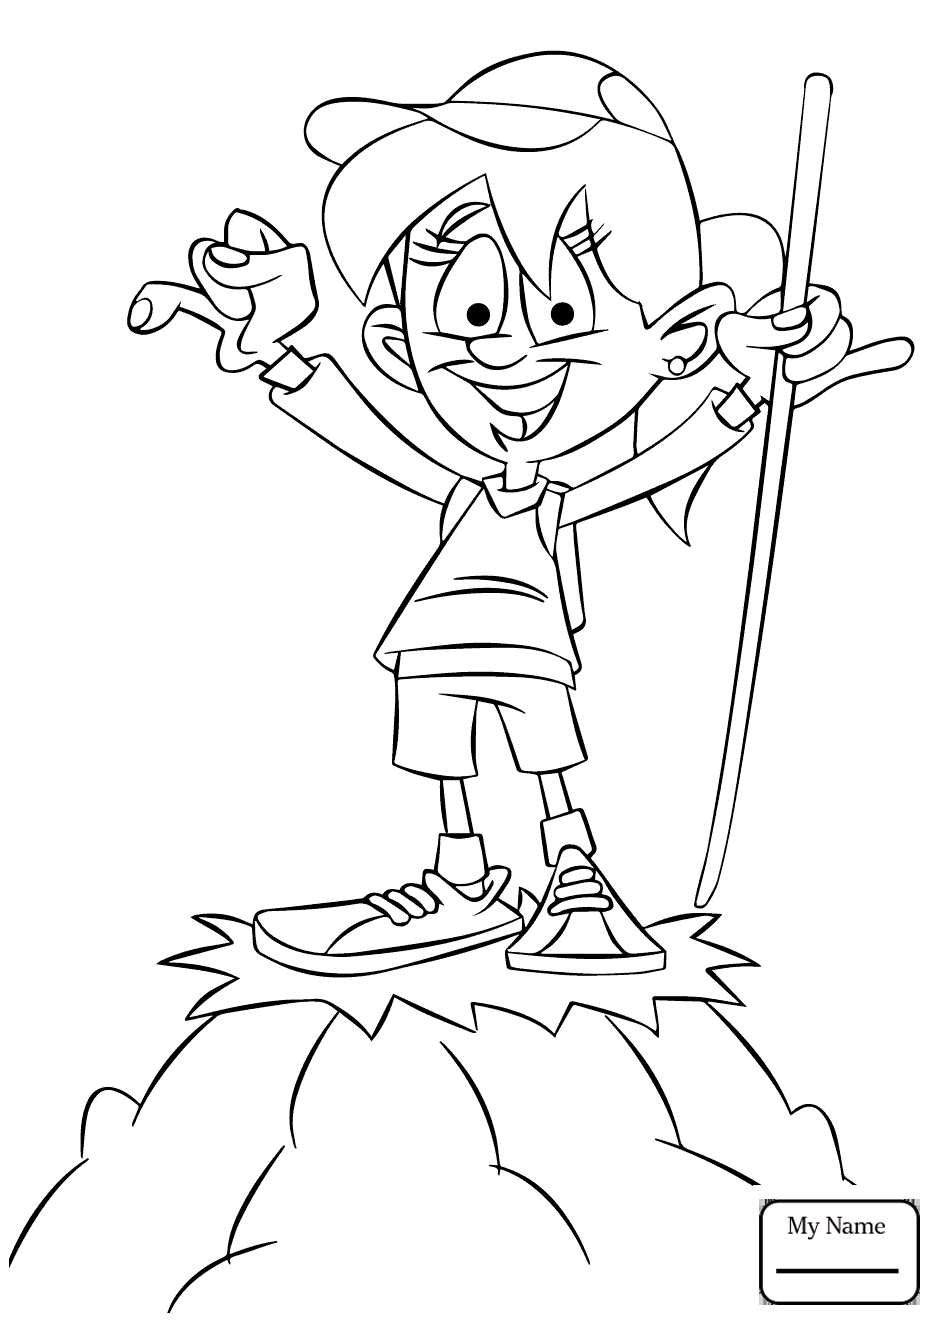 937x1326 Activities Camping Tent Coloring Pages Mycoloring7